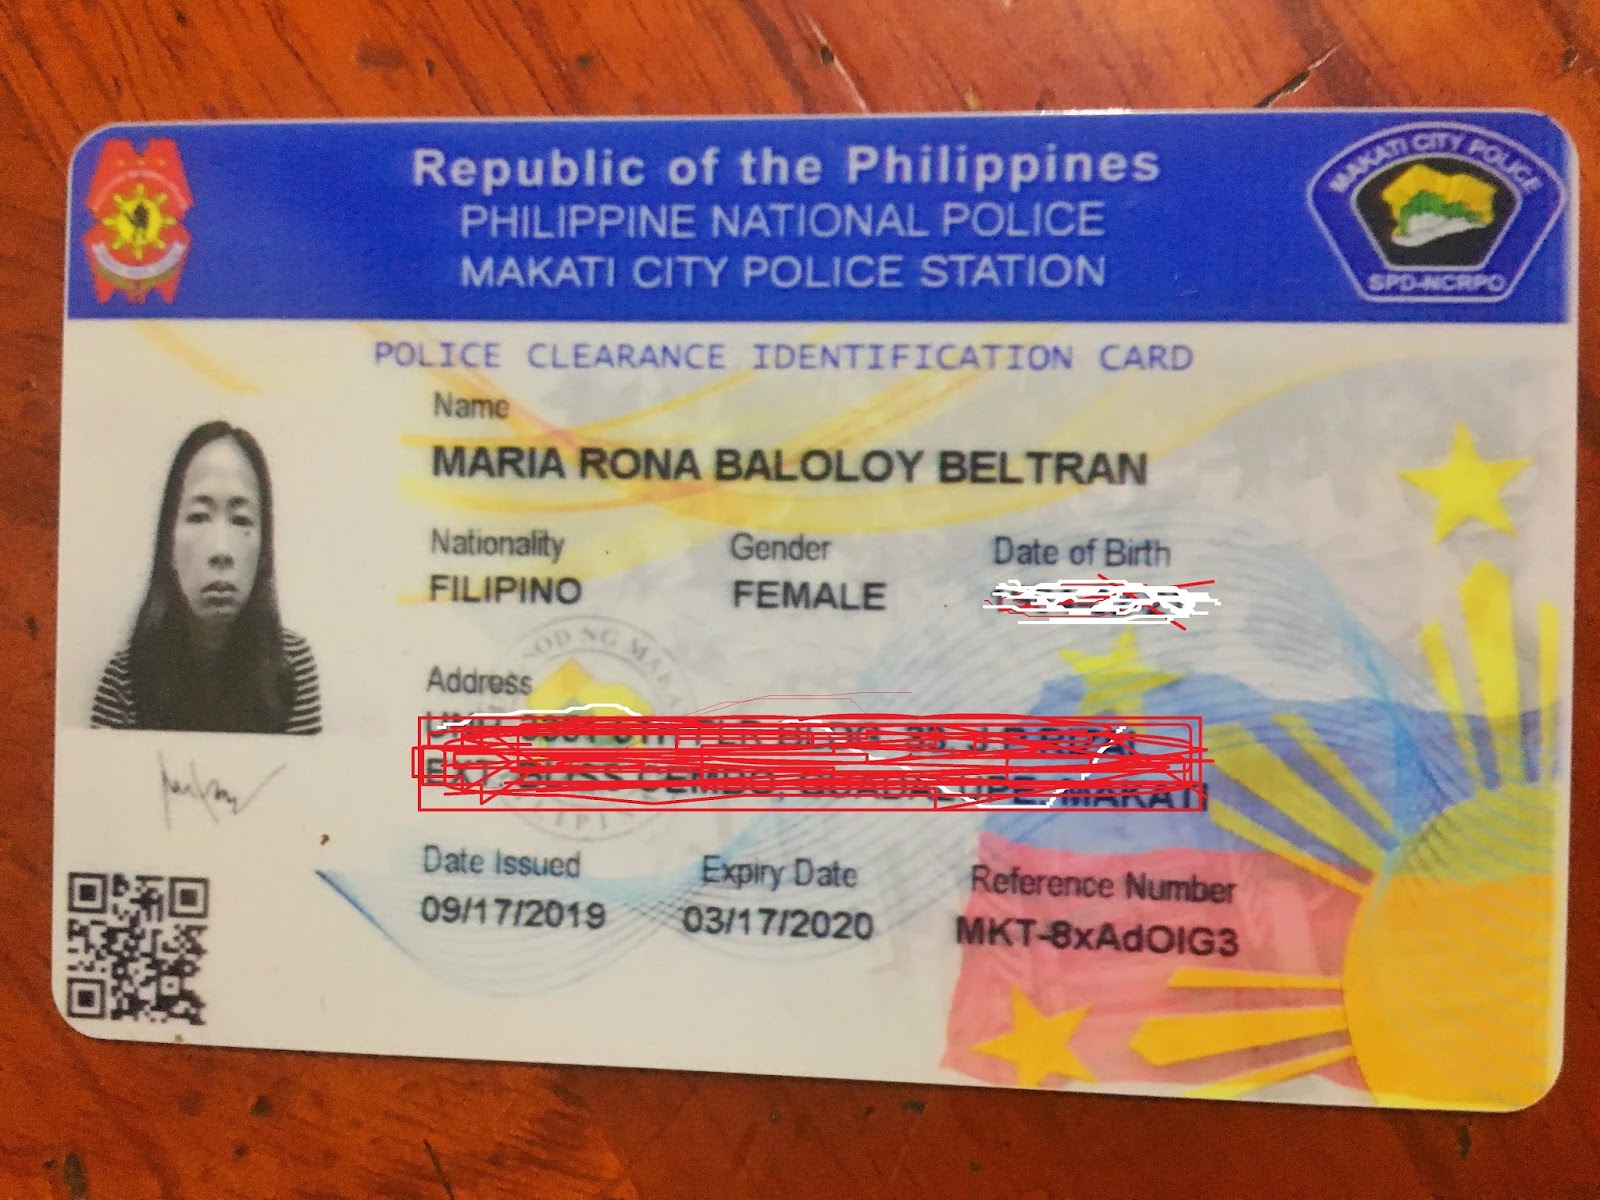 HOW TO GET POLICE CLEARANCE IN MAKATI